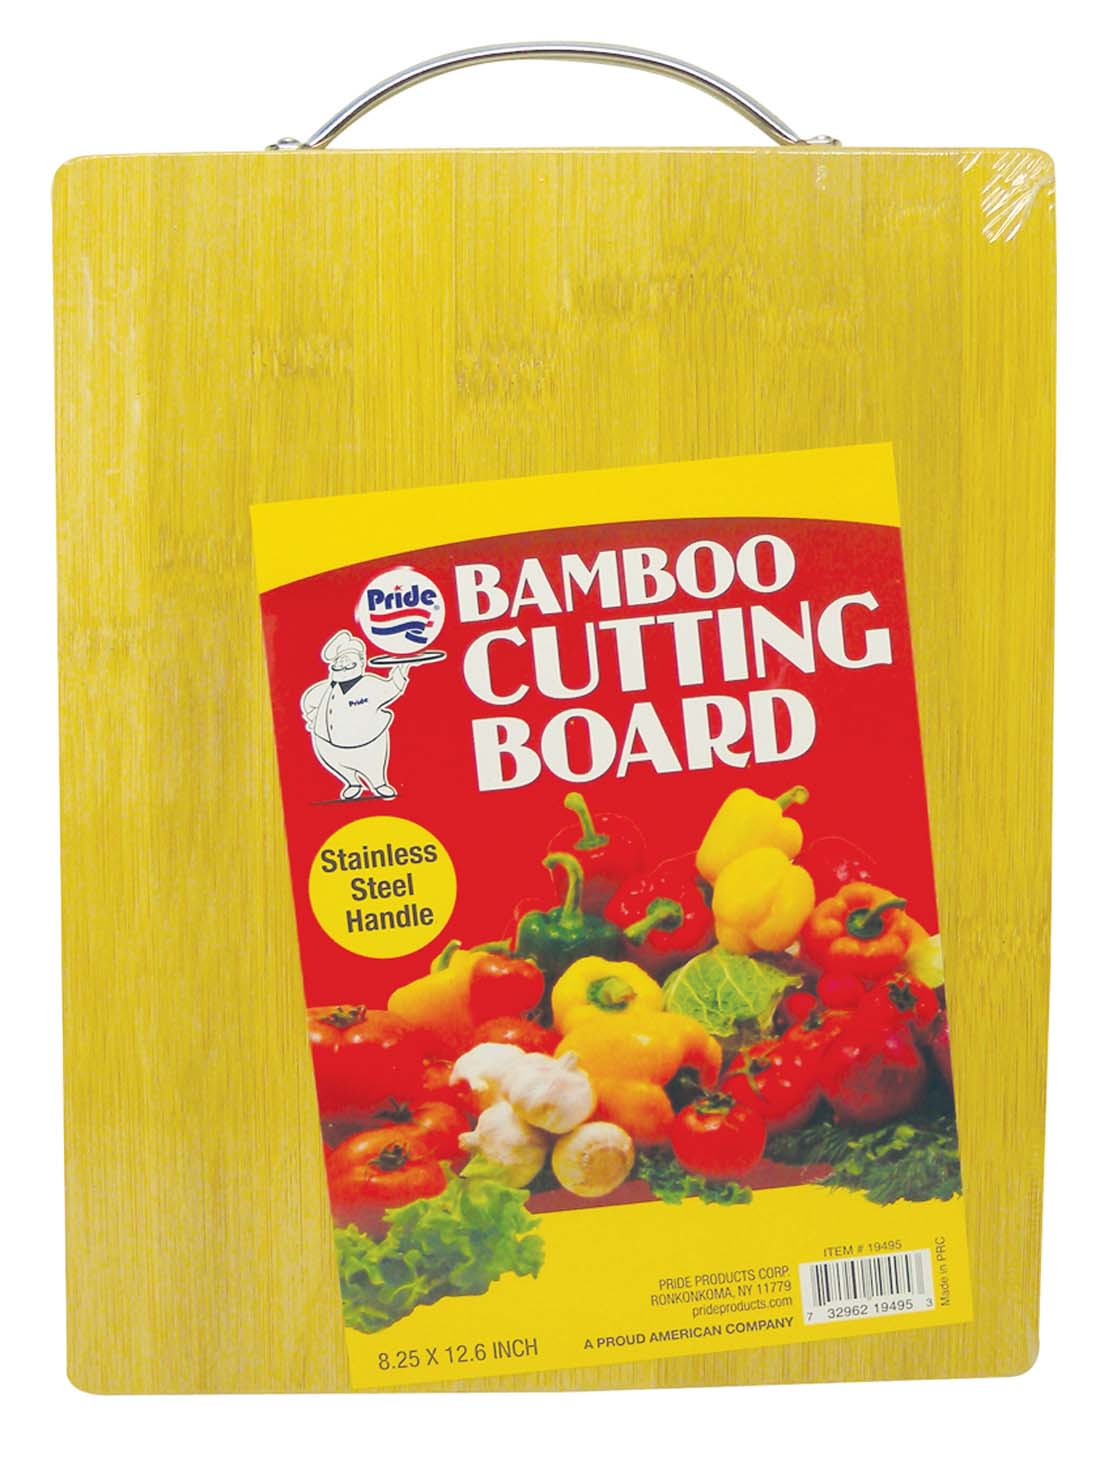 View BAMBOO CUTTING BOARD 8.25 X 12.6 INCH HEAVY DUTY WITH STAINLESS STEEL HANDLE